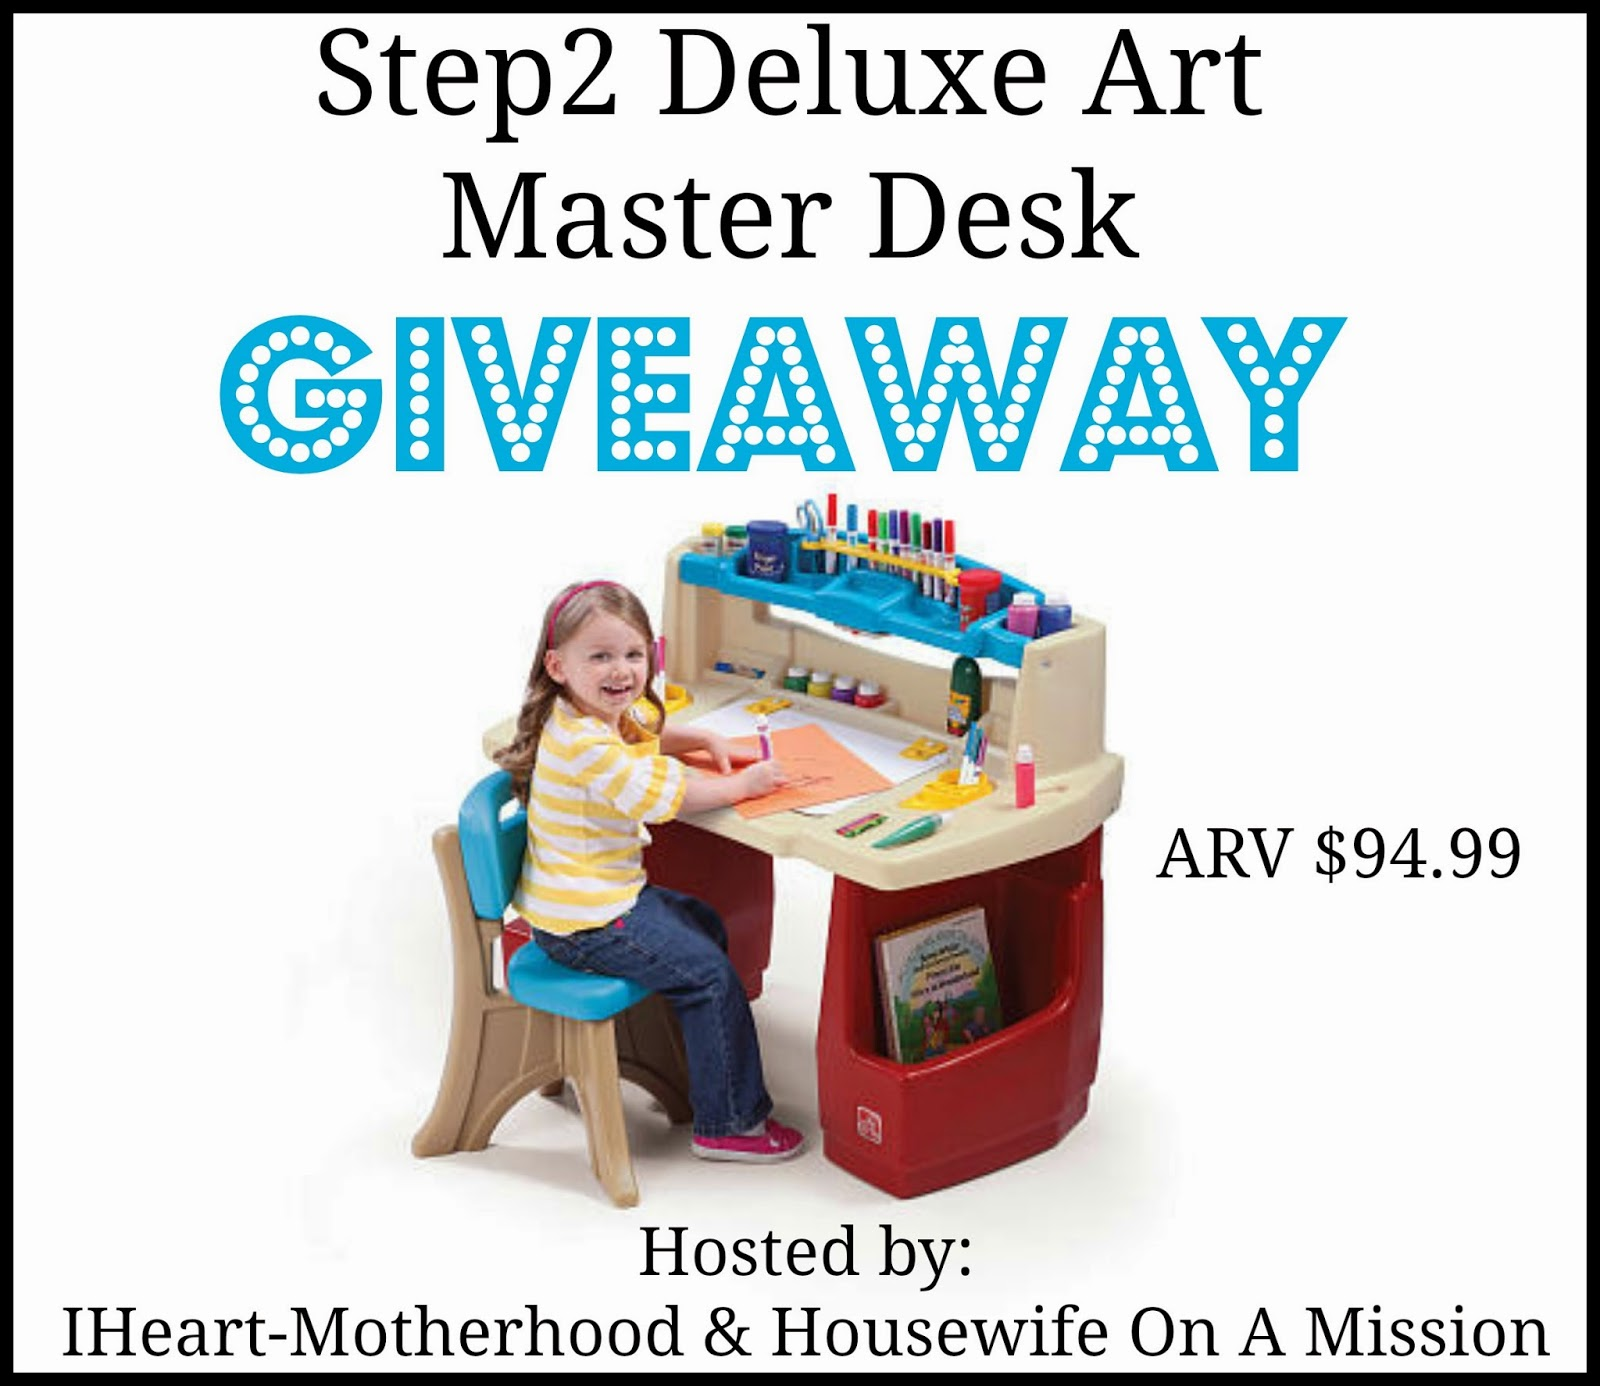 Enter the Step2 Deluxe Art Master Desk Giveaway. Ends 10/29.